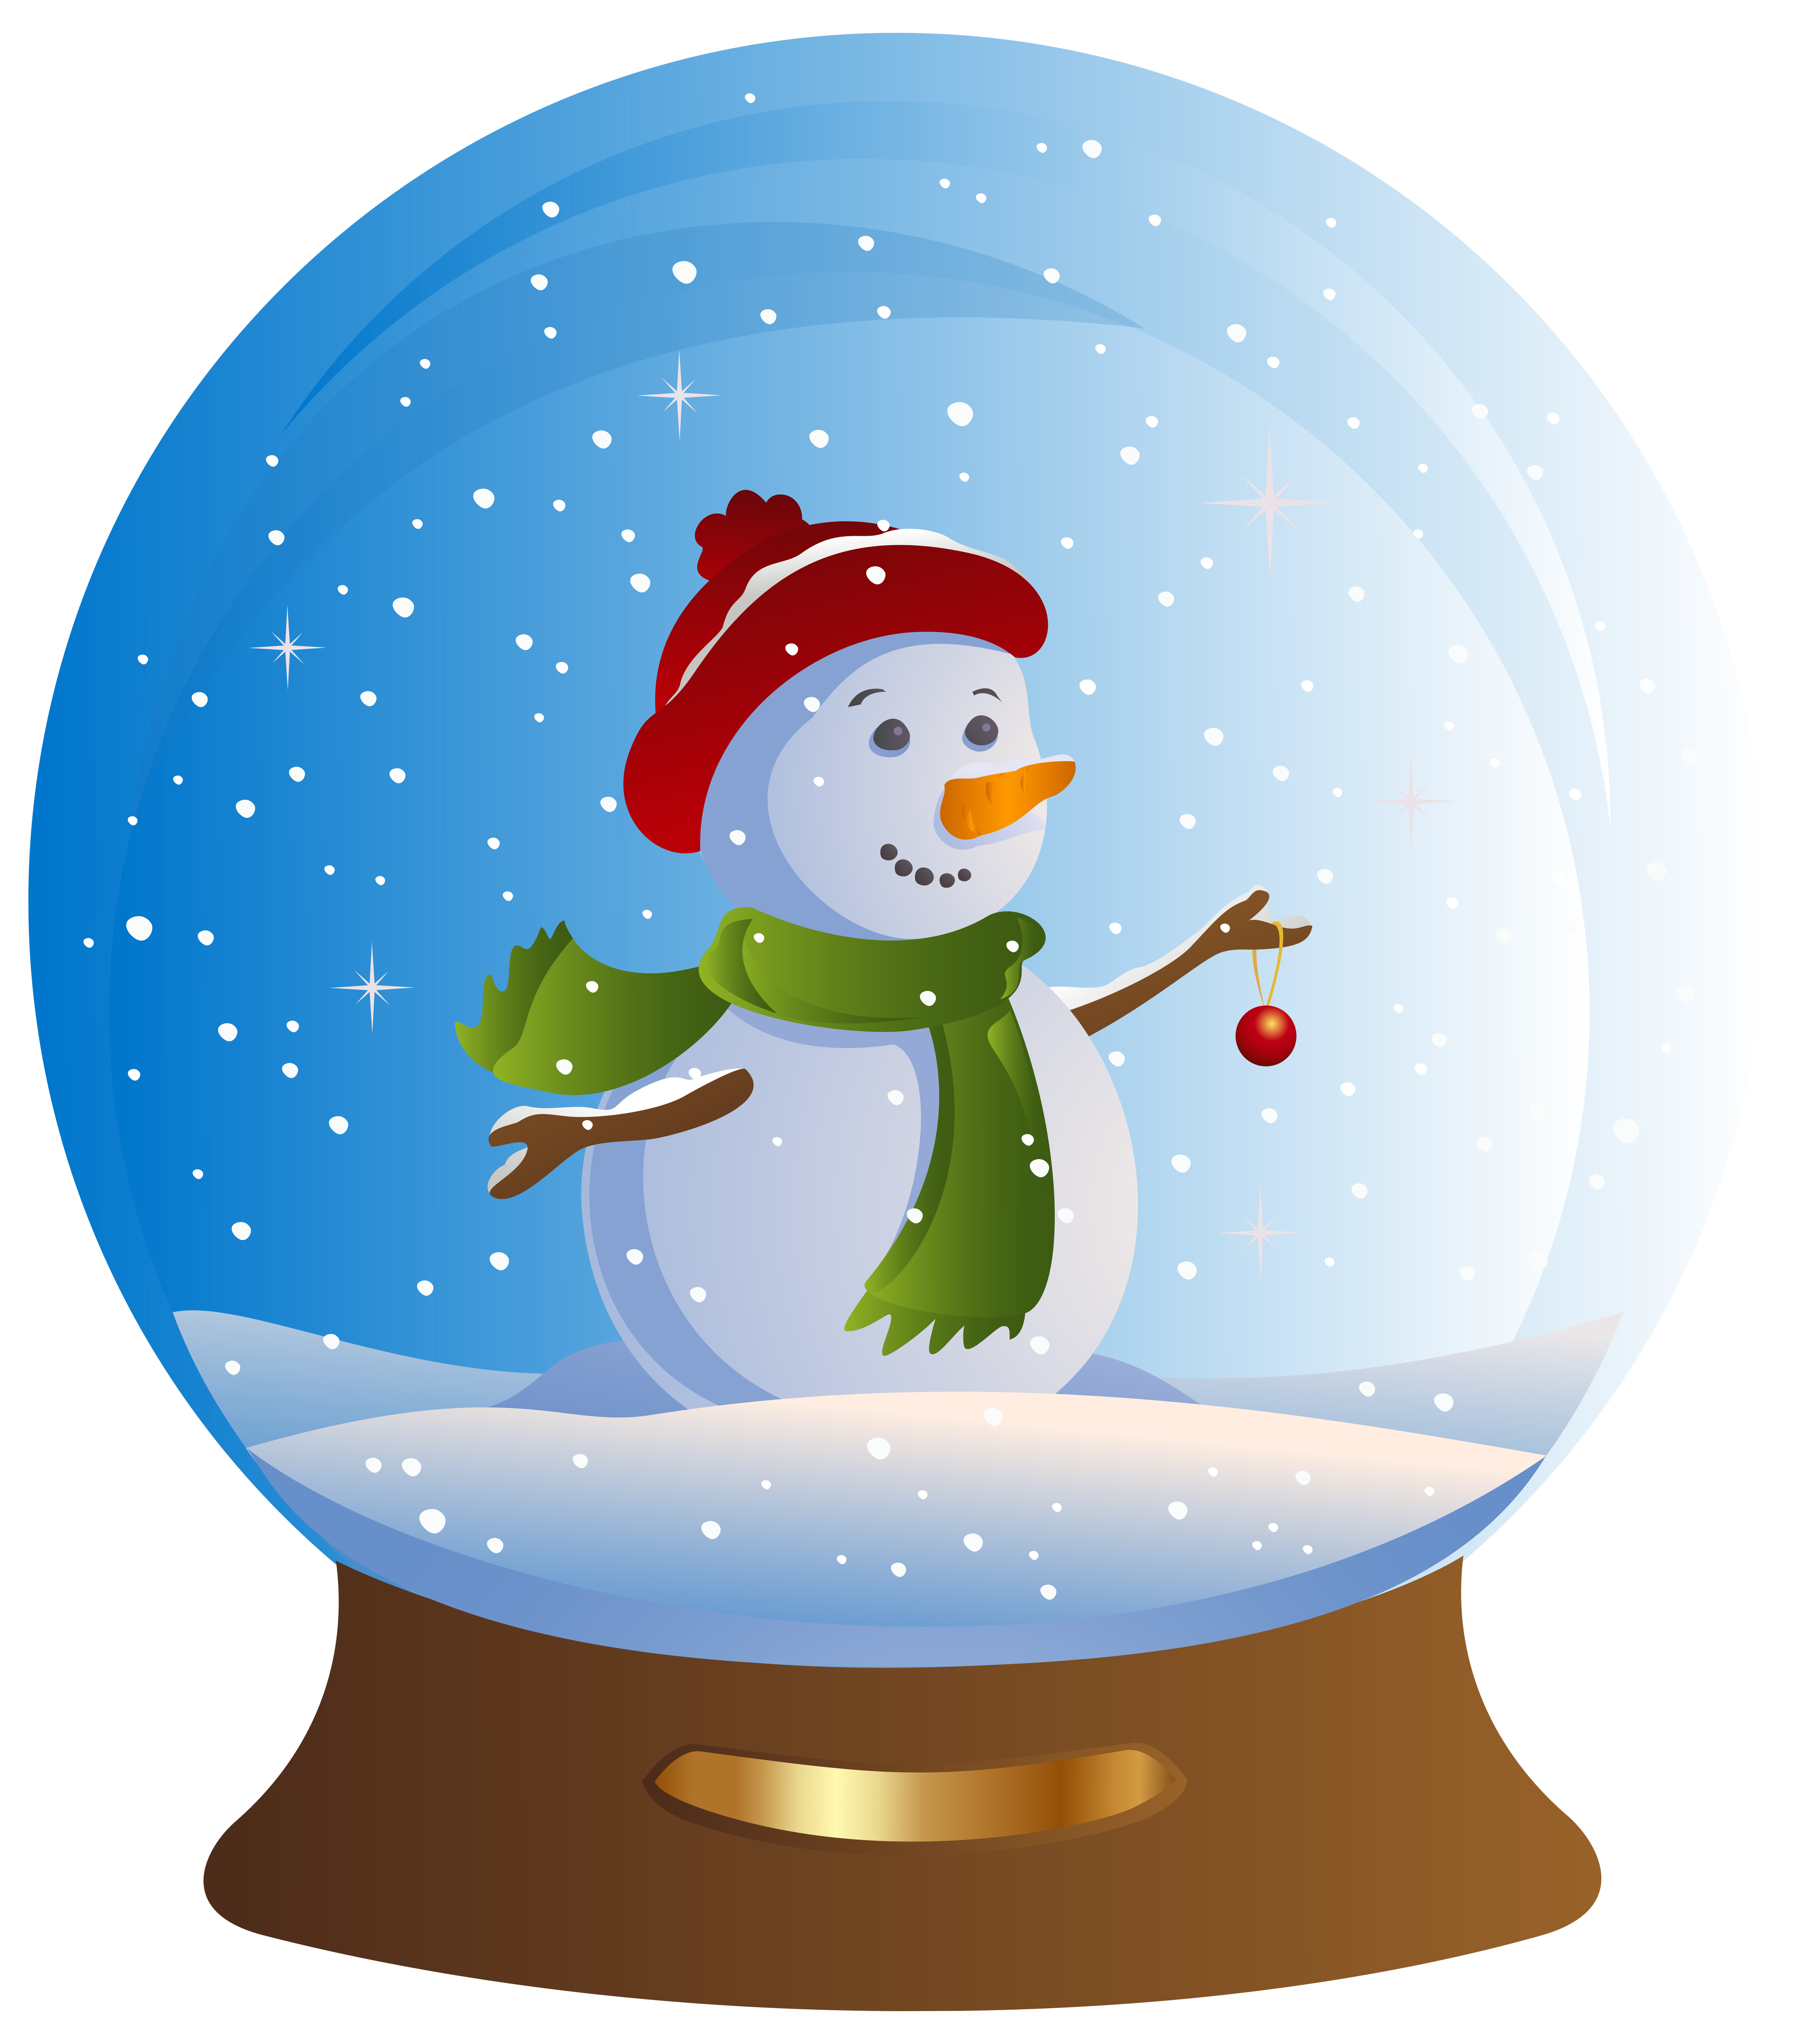 Snowglobe drawing eve. Collection of snowman